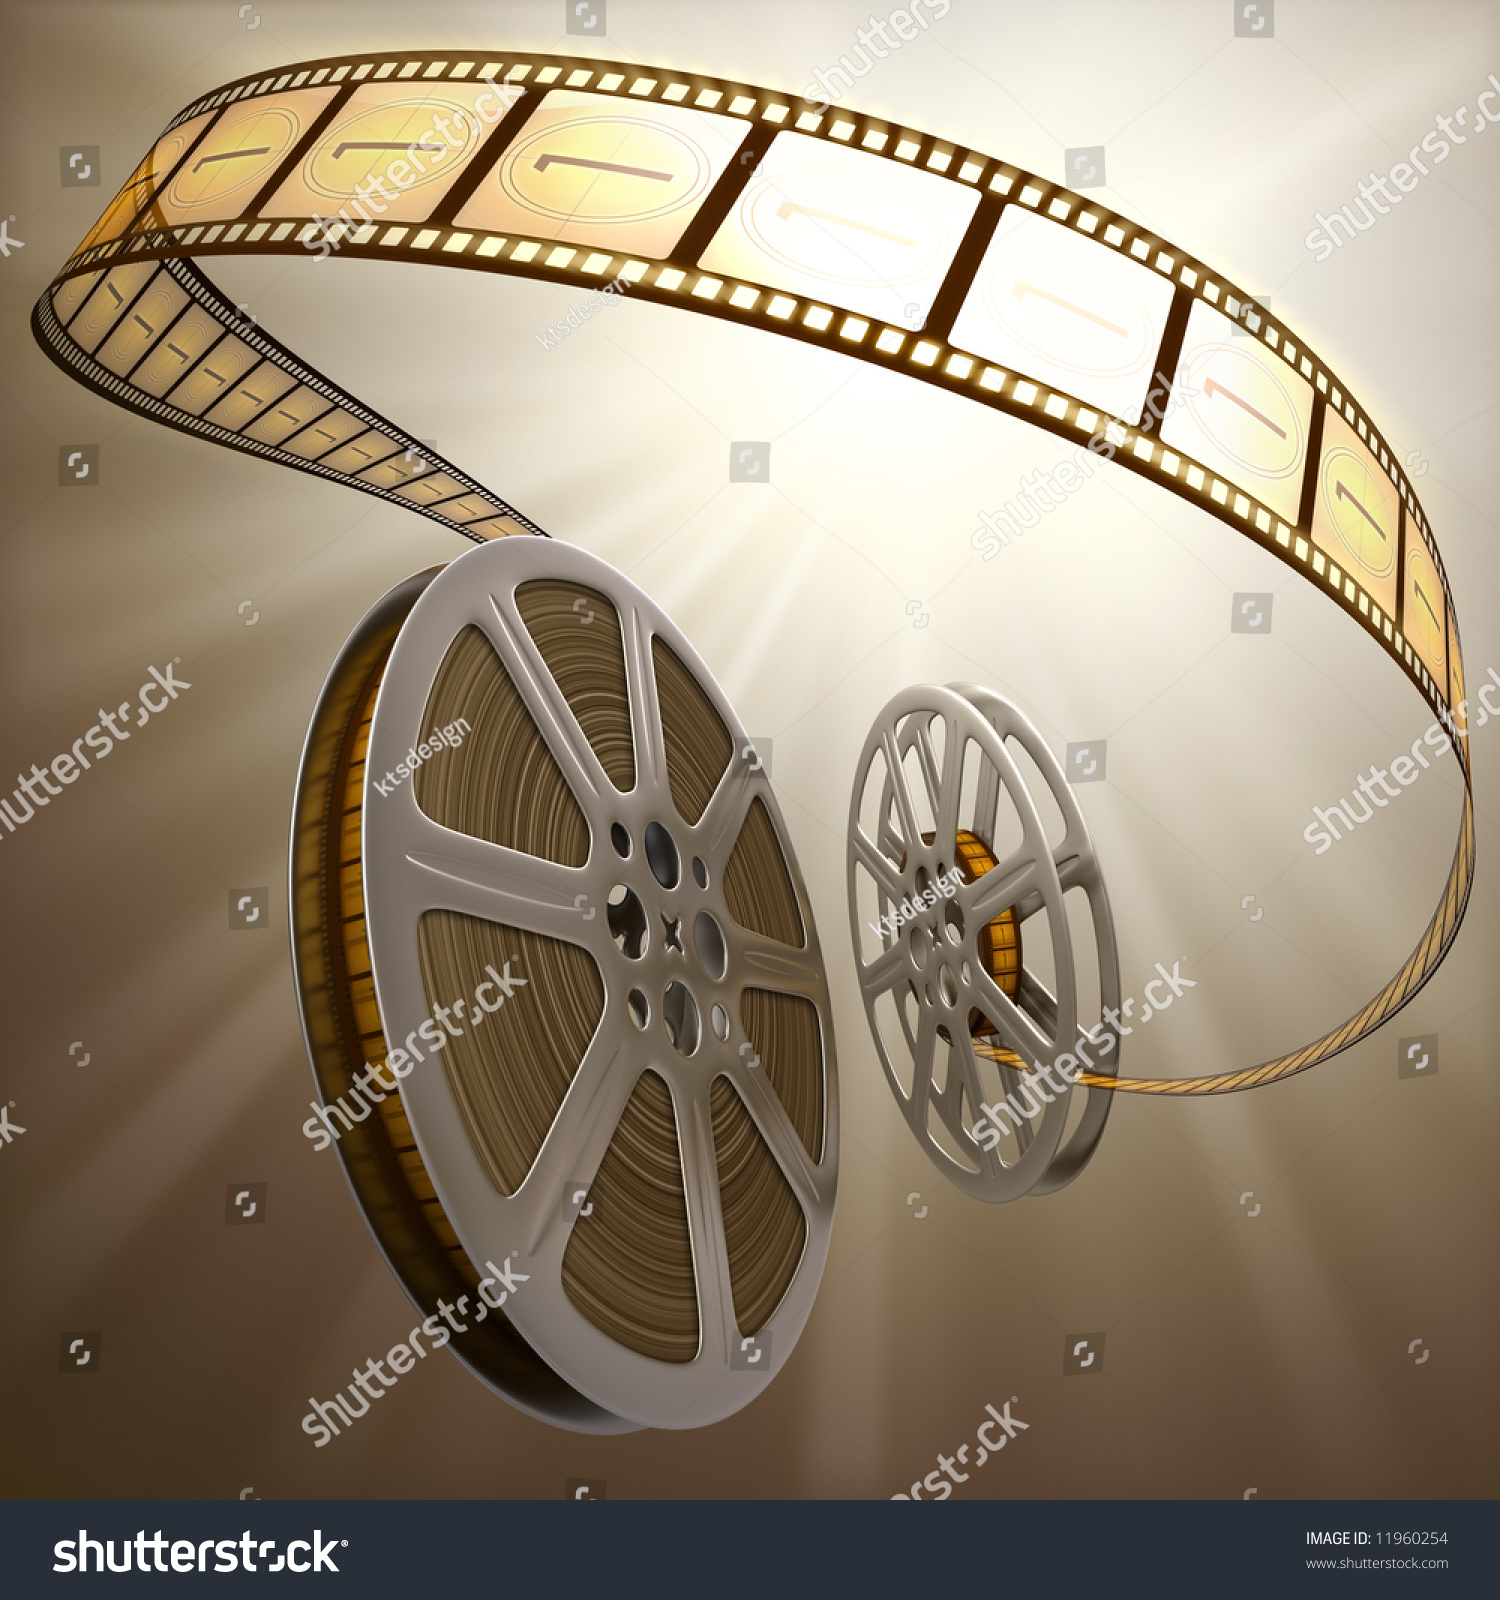 inventory valuation in the film industry Definition the scope of inventory management concerns the balance between replenishment lead time, carrying costs of inventory, asset management, inventory forecasting, inventory valuation.